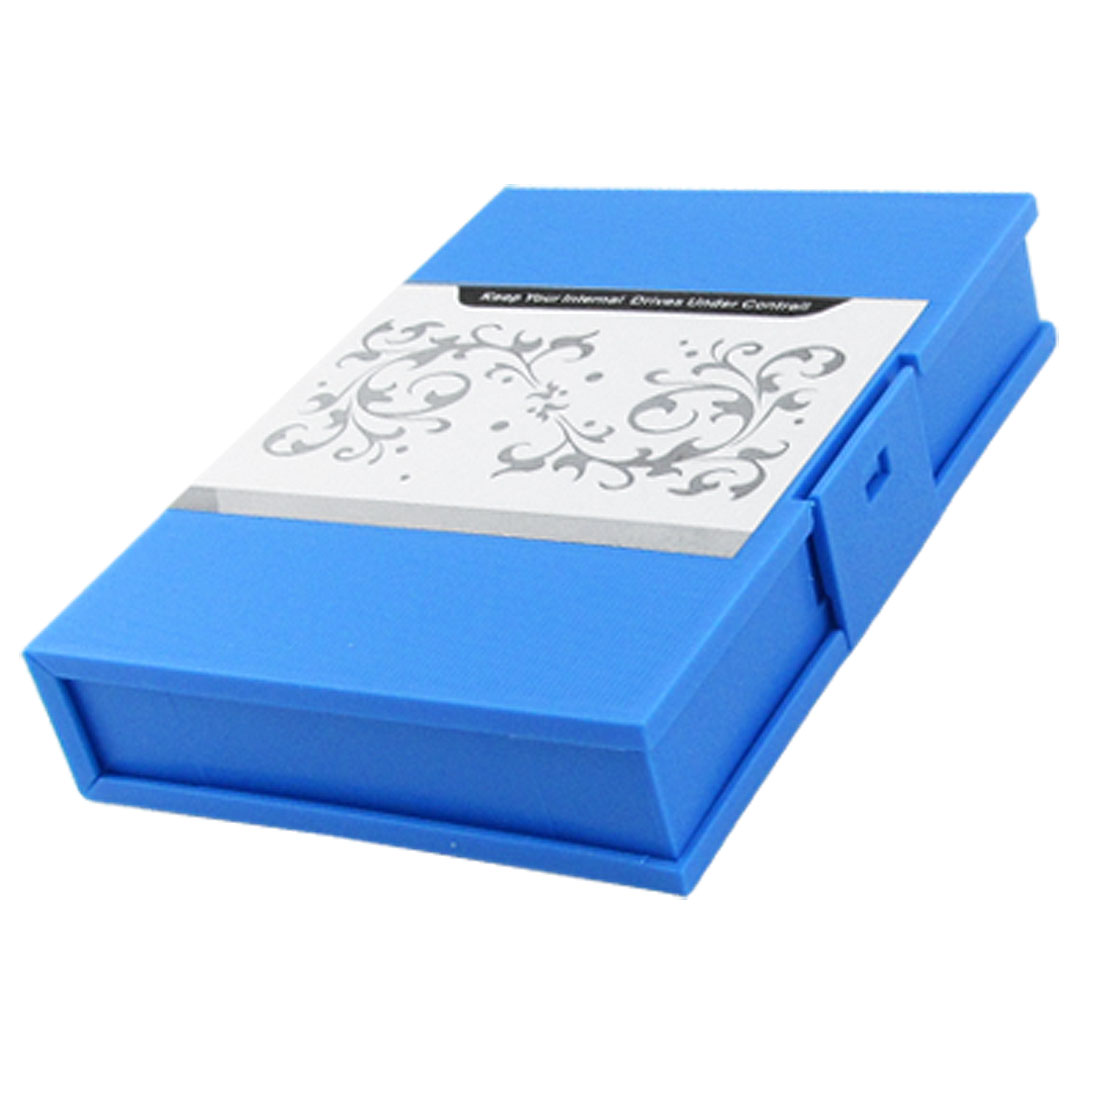 "3.5"" HDD Blue Plastic Holder Flower Print Rectangle Box"